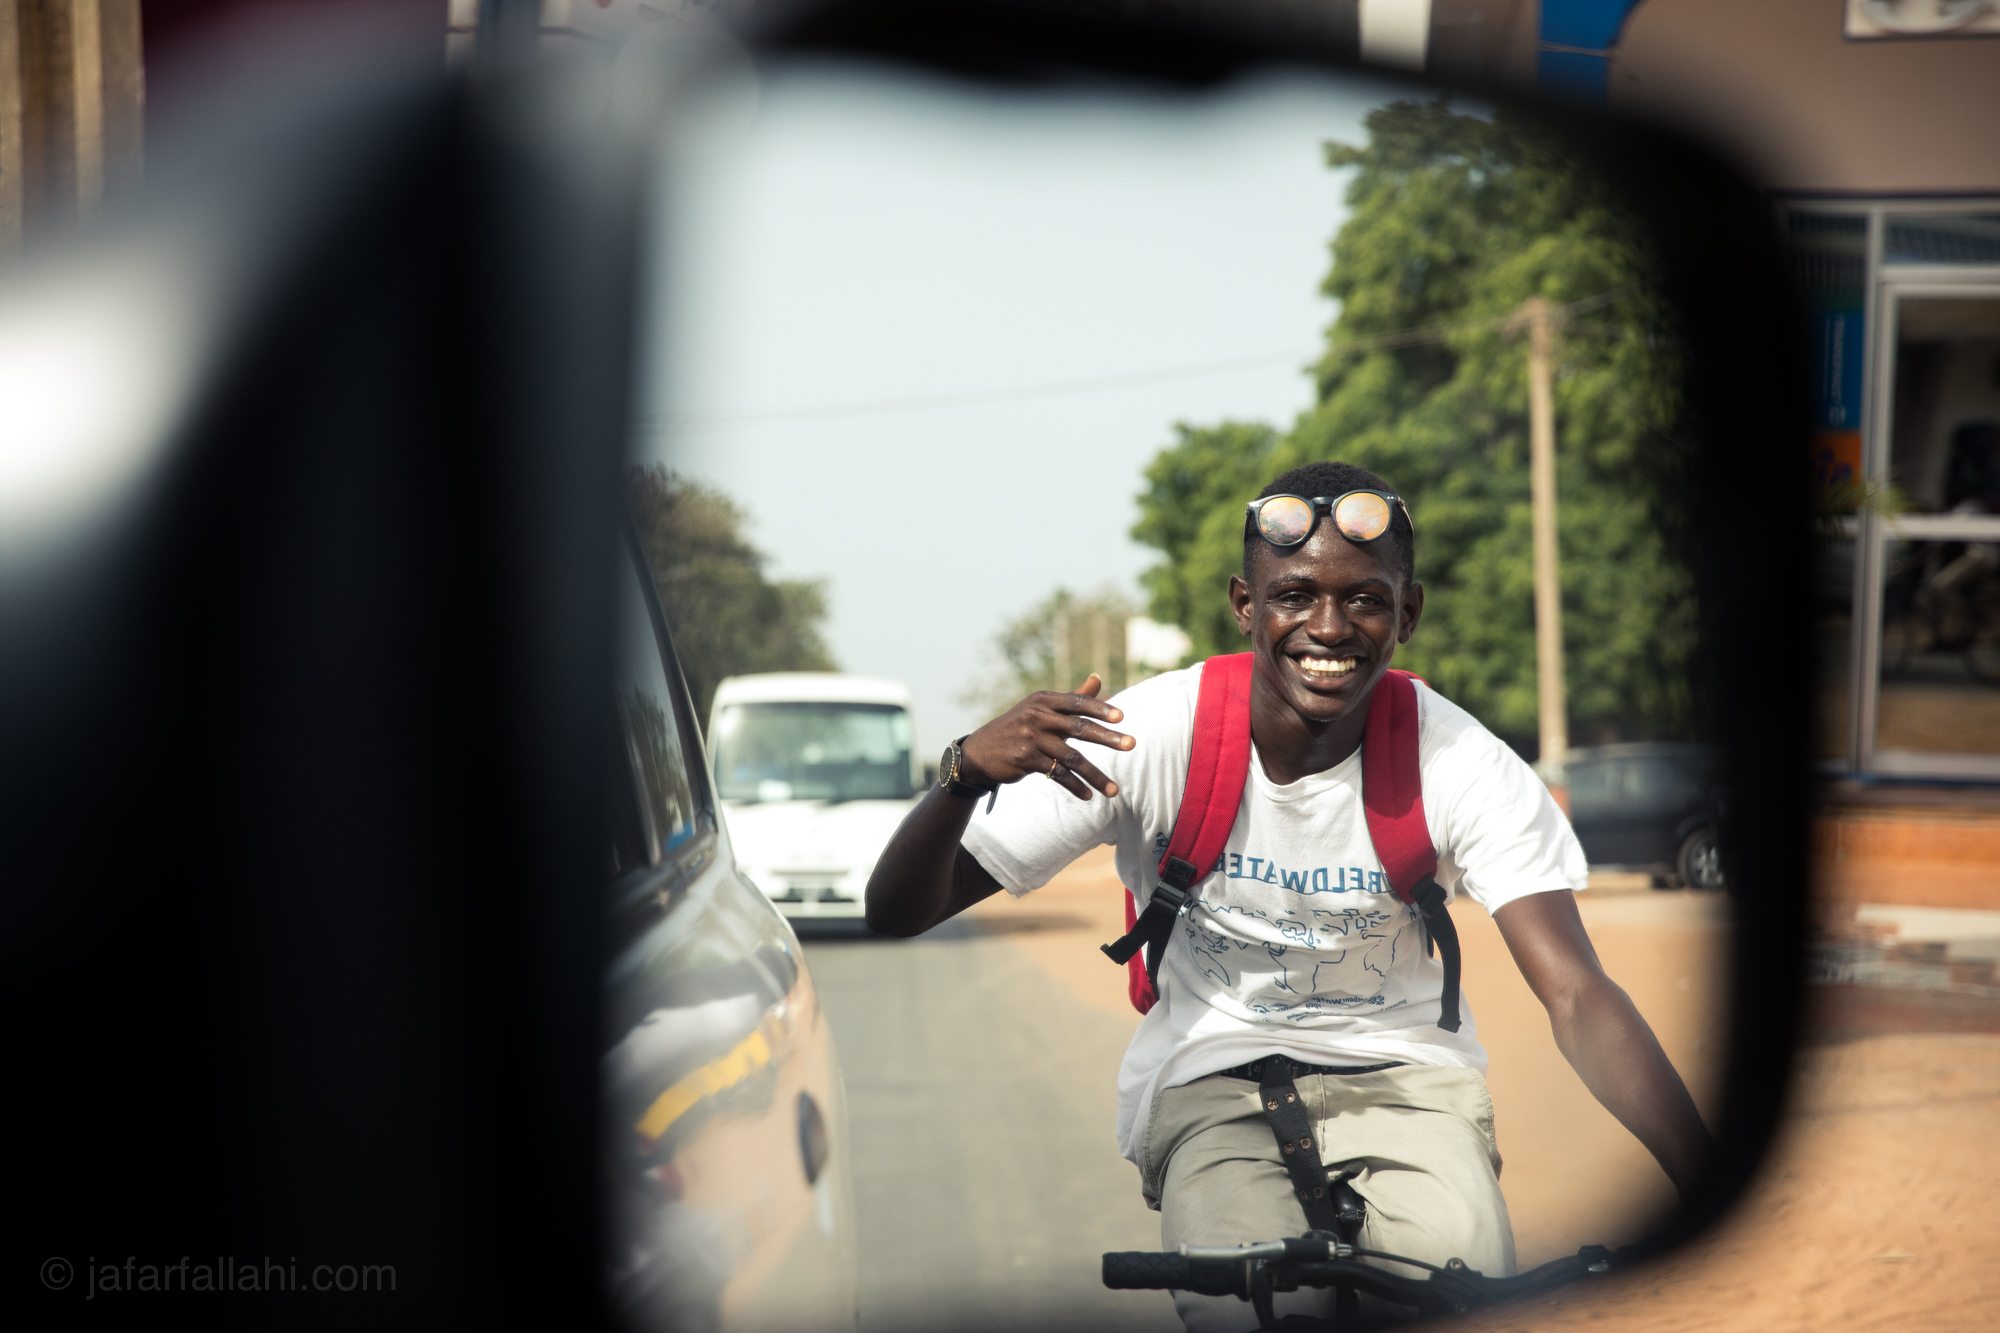 This guy was using our truck to tow him around town. As soon as he saw me taking his picture through the rear-view mirror he smiled and waved.